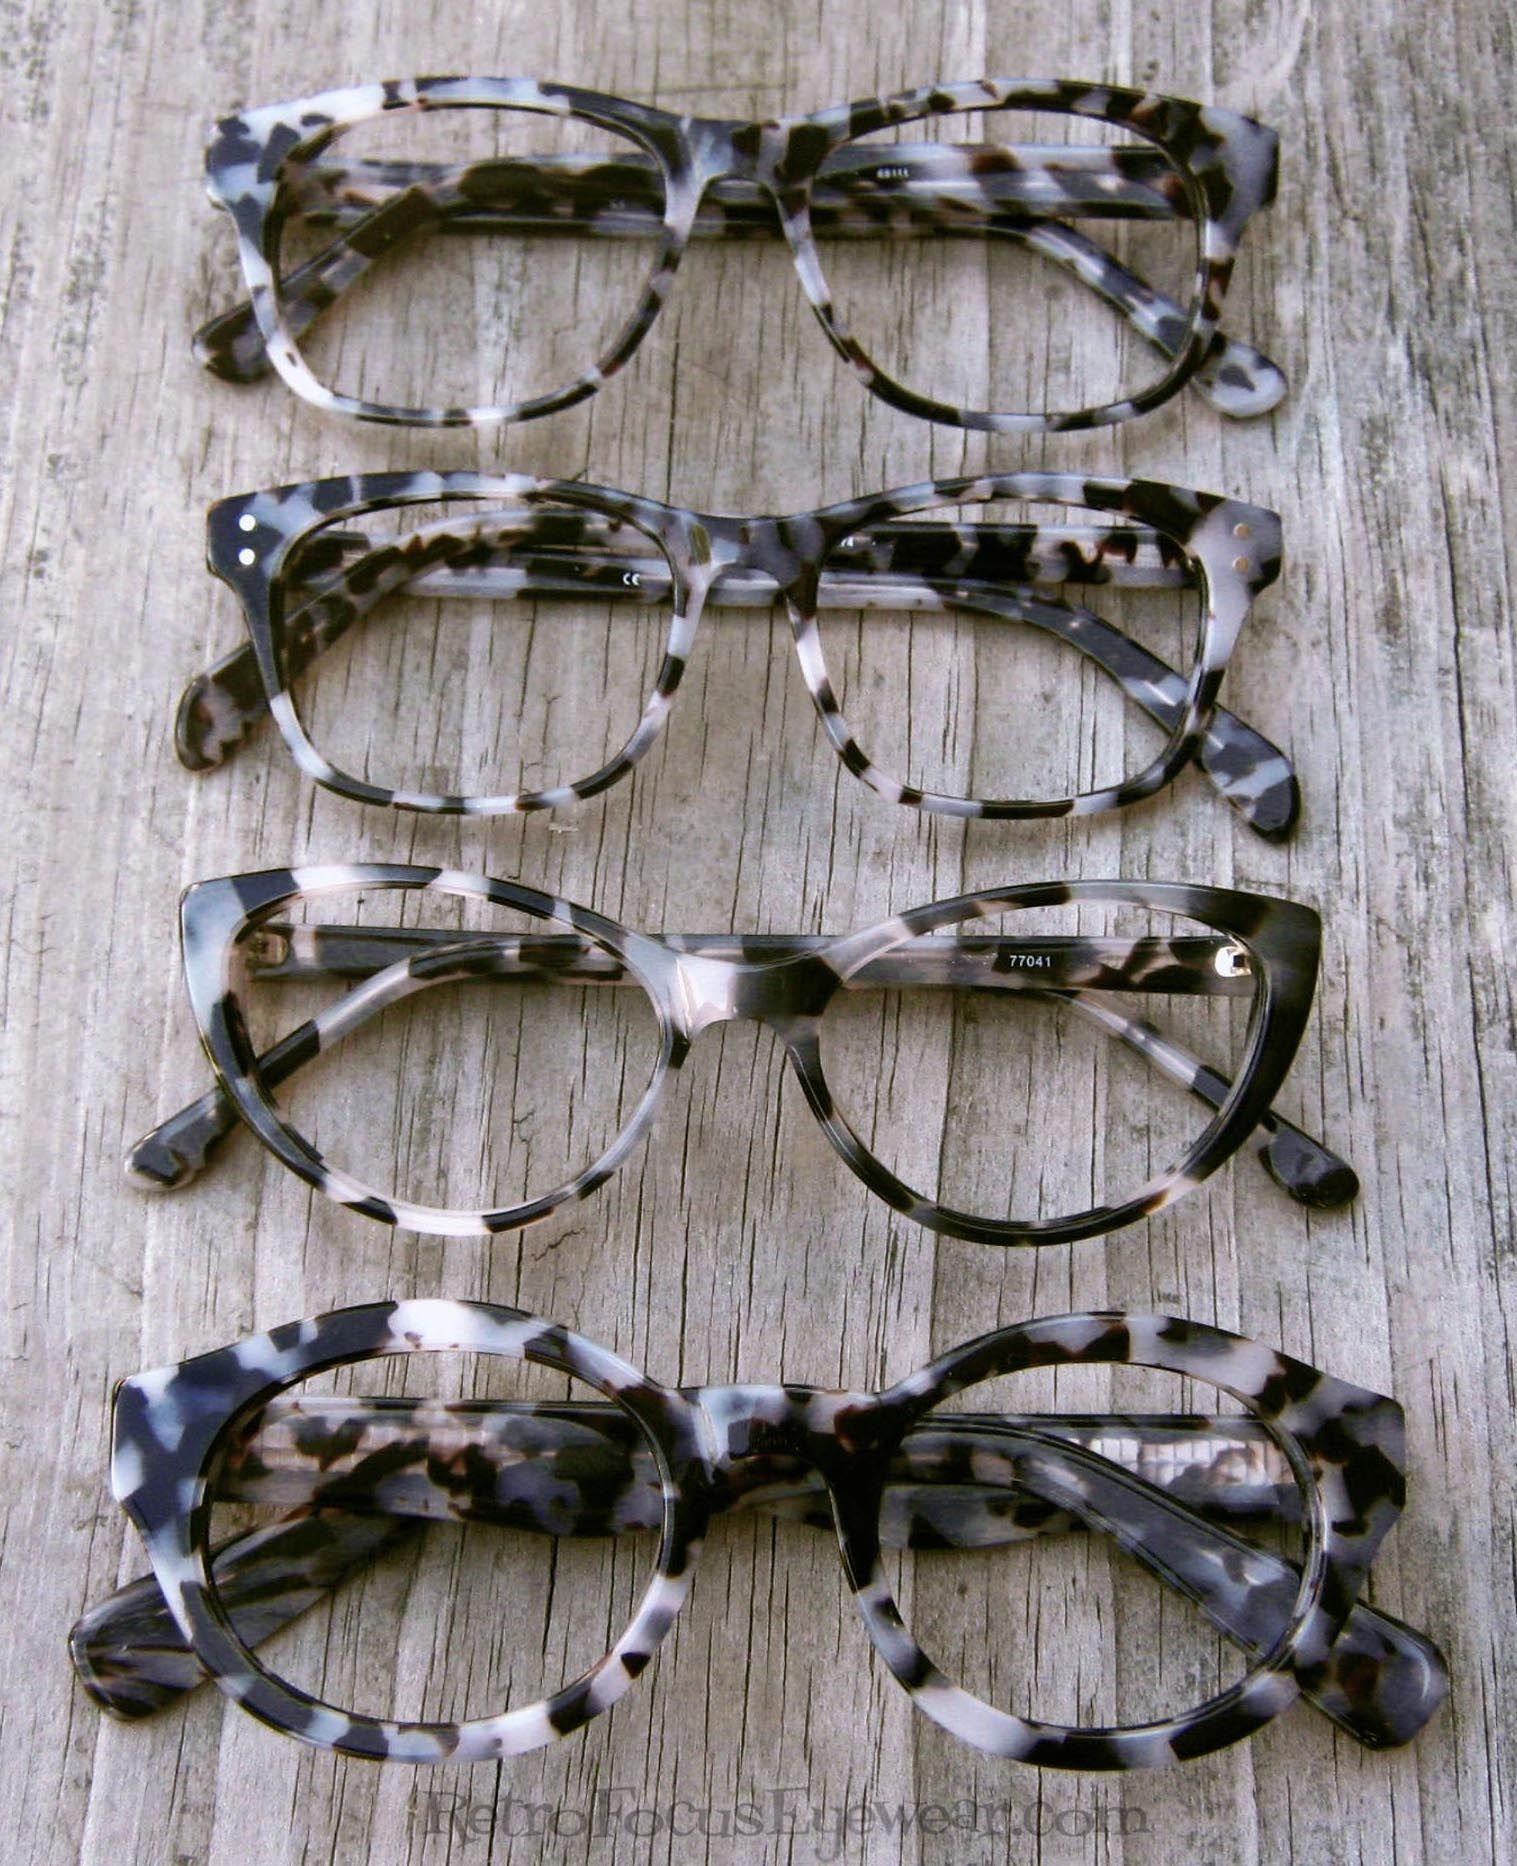 c231ccac25c 50 somethin  shades of grey tortoise eyeglass frames. Eyeglasses in the  newest hottest grey palette.